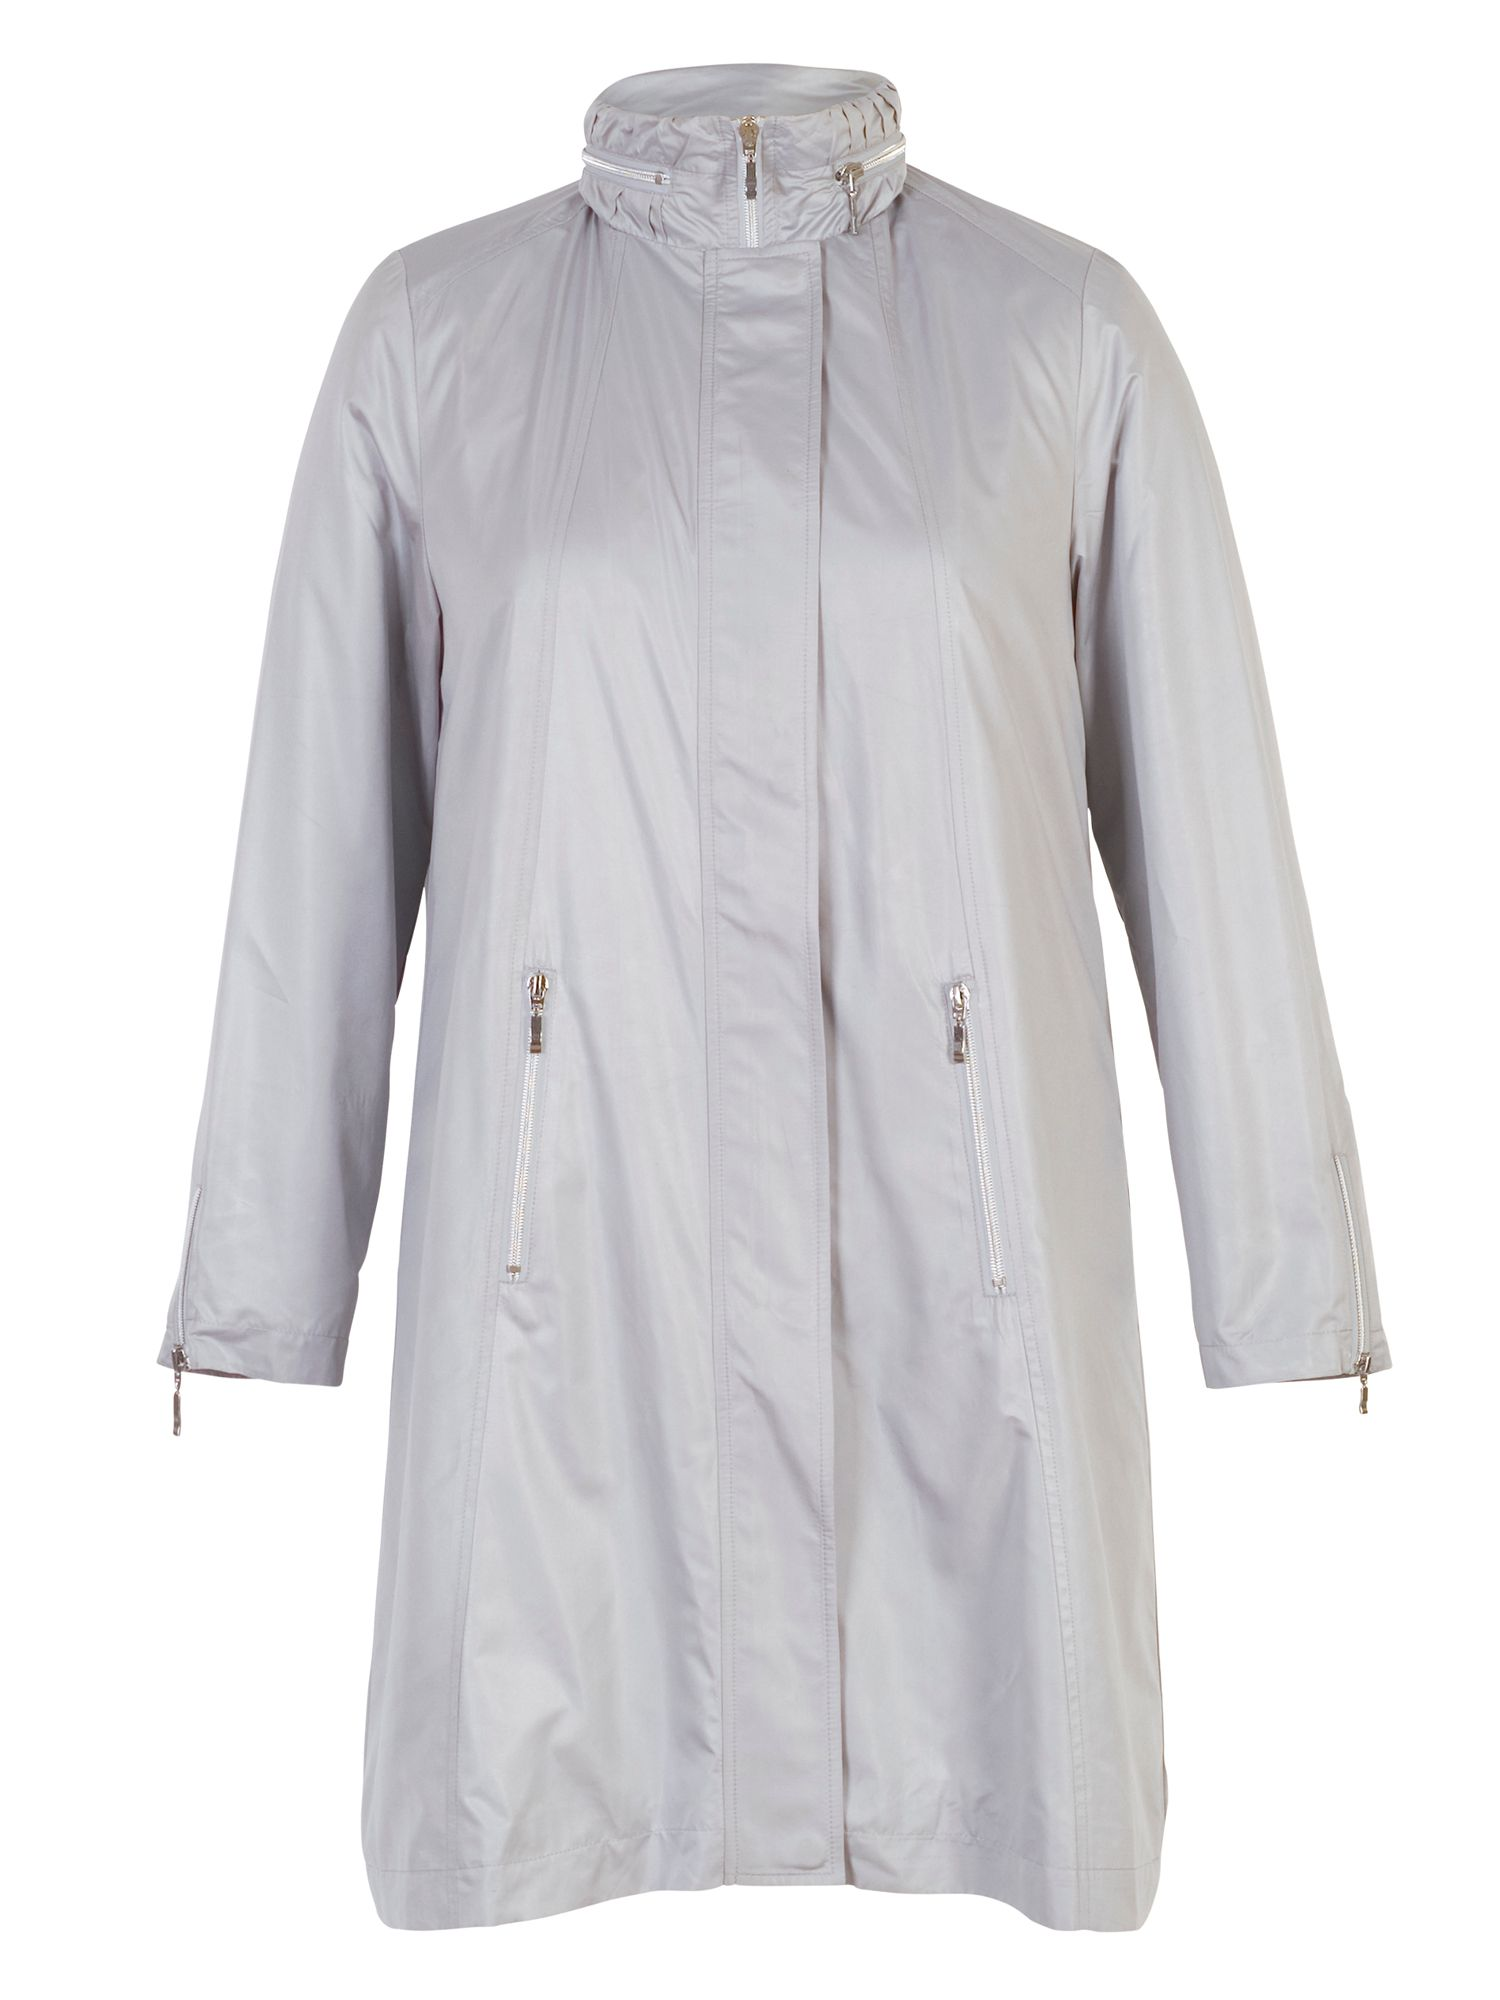 Chesca Pearlised Raincoat with Ruched Collar, Silver